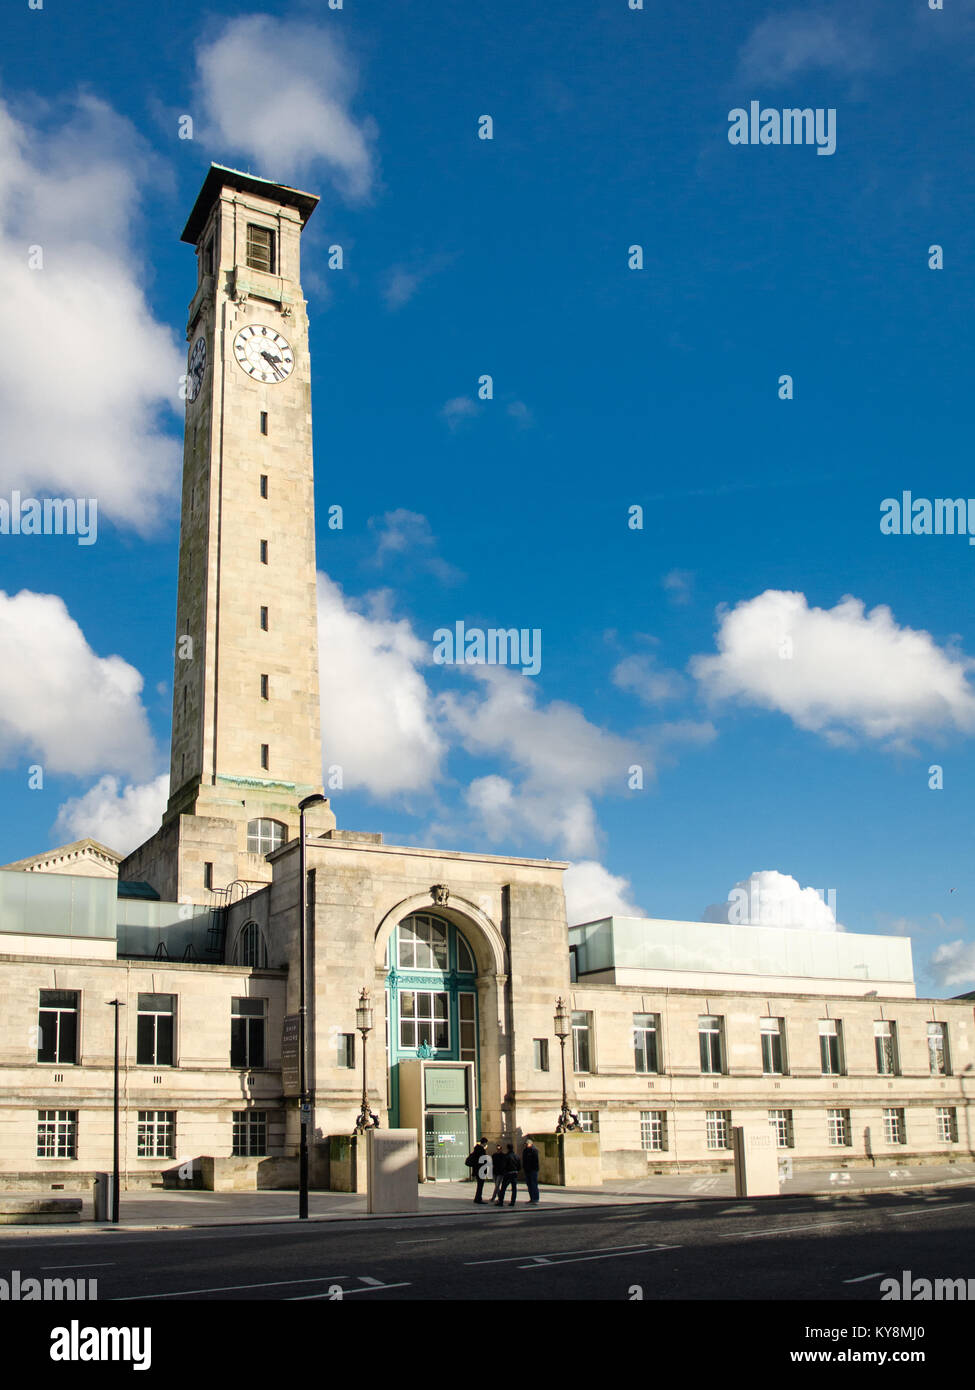 Southampton, England, UK - February 16, 2014: Sun shines on the art deco facade and clock tower of the west wing - Stock Image